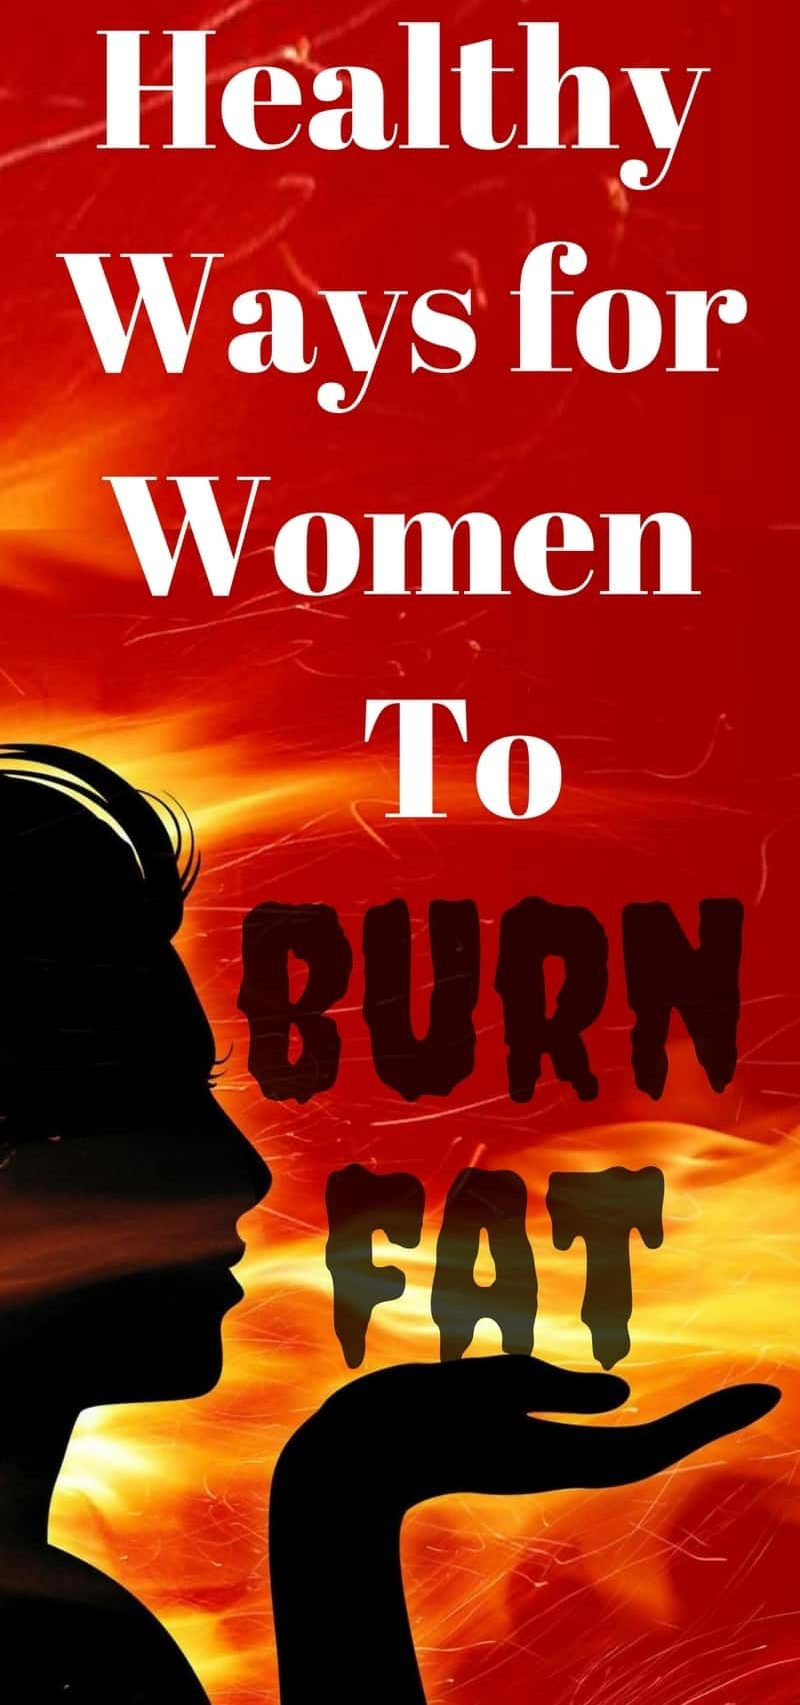 Healthy Ways for Women to Burn Fat | fat burners for women pills | fat burners for women best | fat burners for women drink | fat burners for women lose belly | supplements | fat burners | weight loss | burn fat | aroadtotravel.com